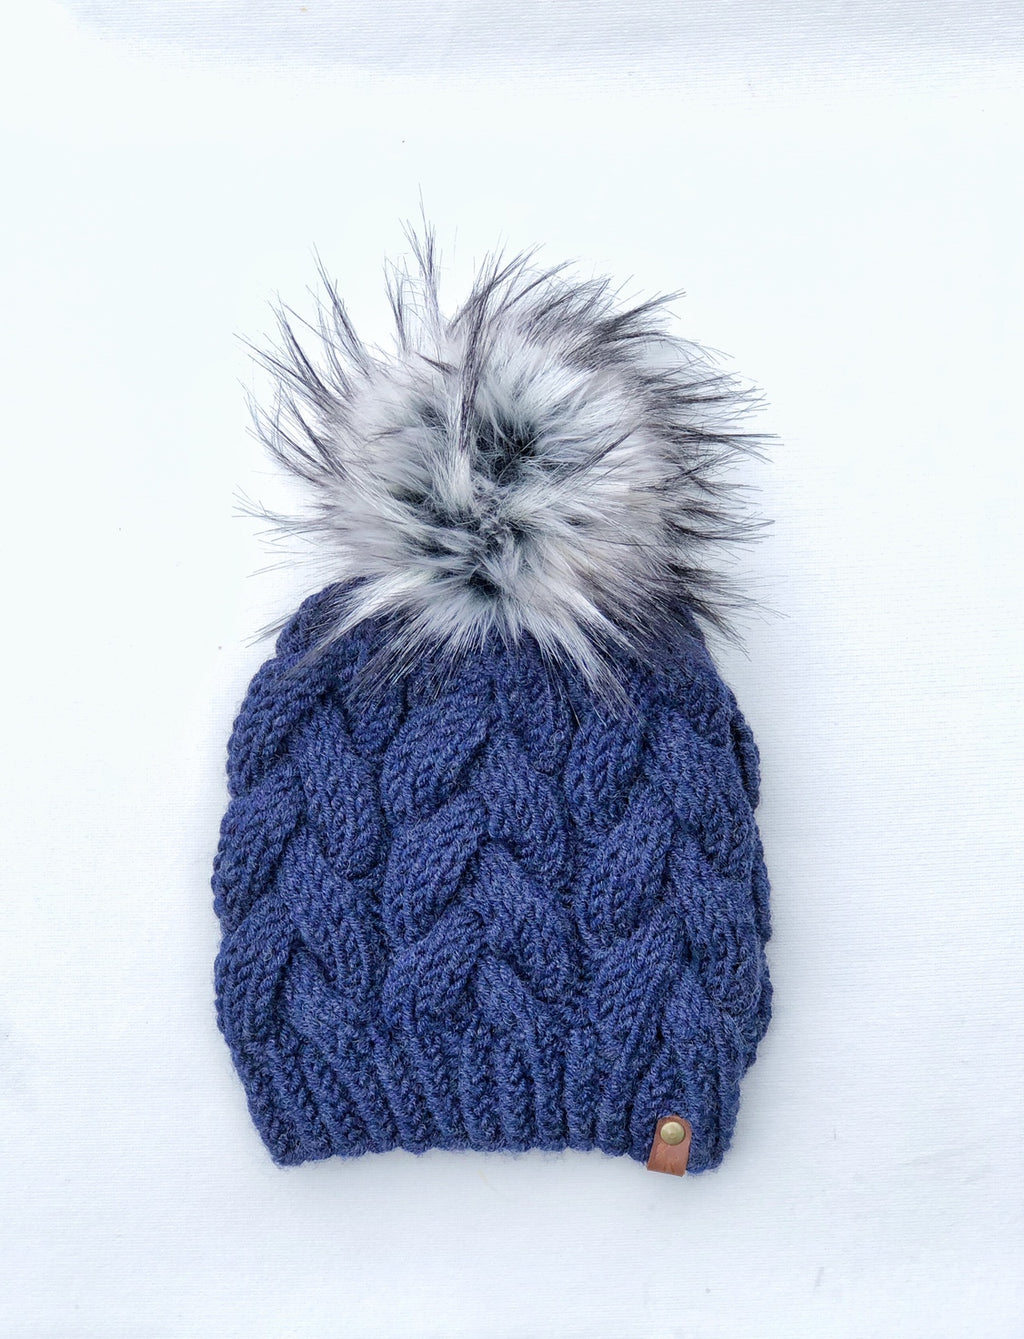 Blue Wool Spun Hand Knit Braided Cable Beanie Hat Marble Faux Fur Pom - KitchenKlutter